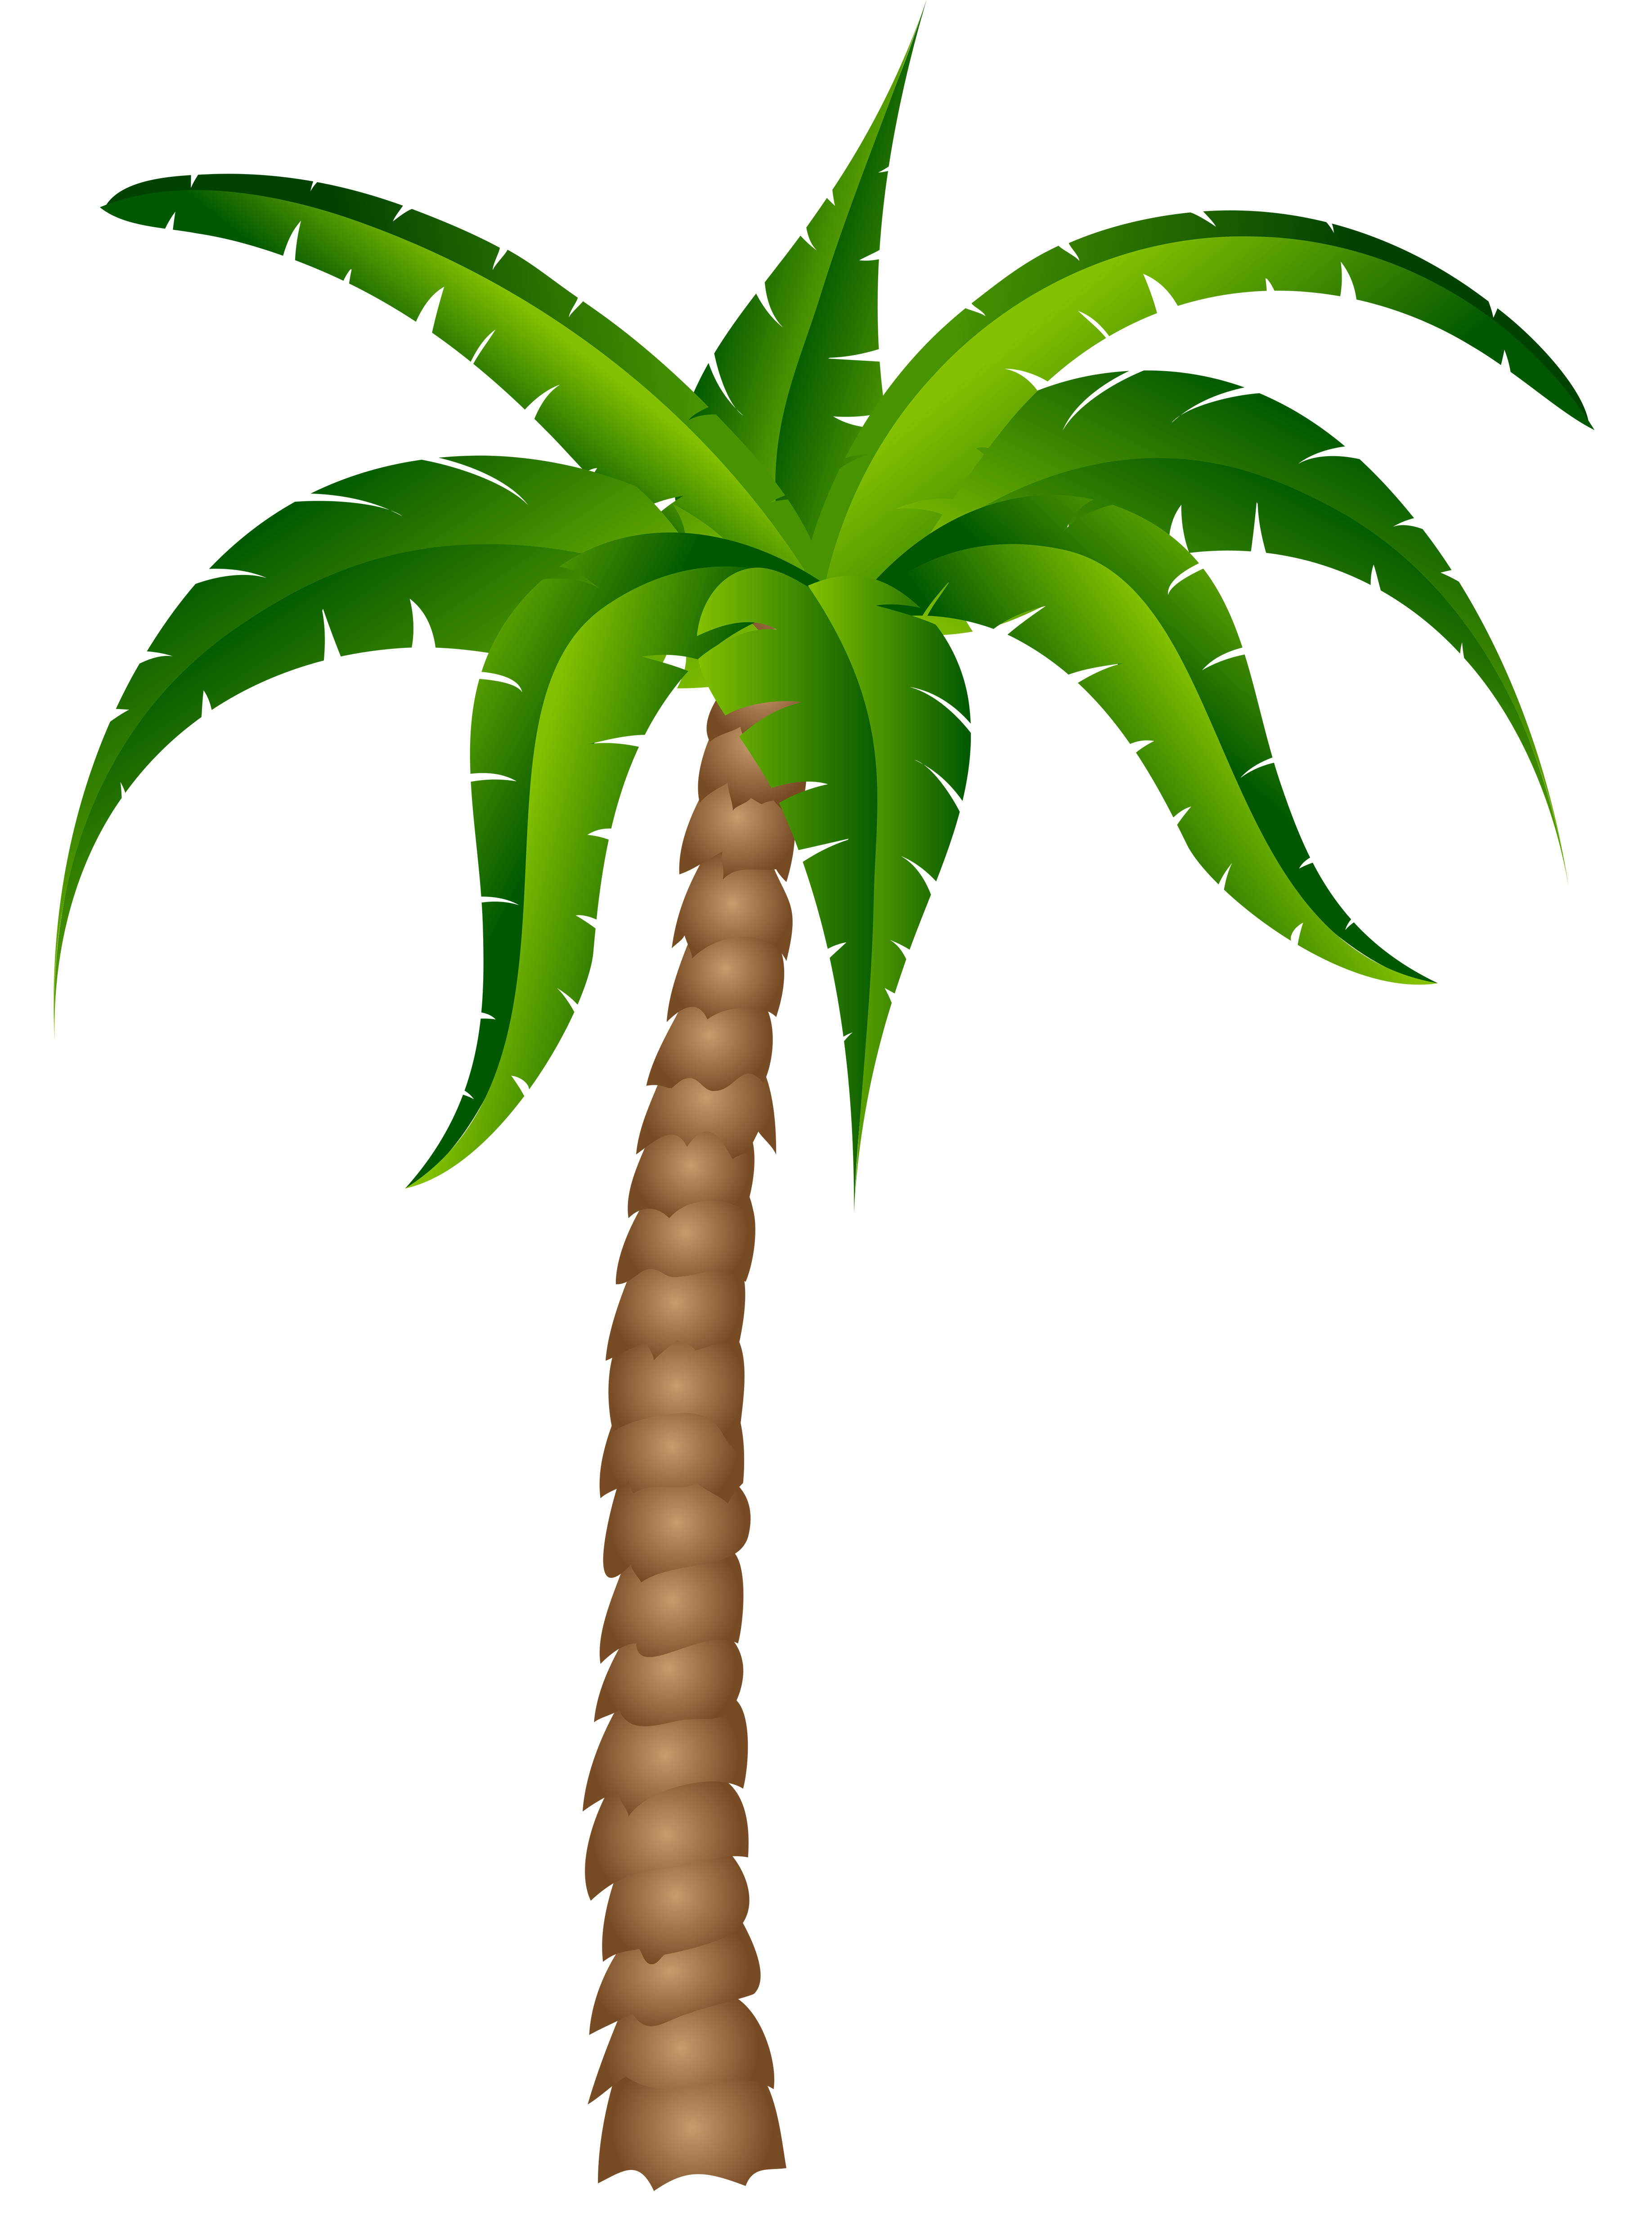 Palm tree palm silhouette clipart clipartcow 2  Cliparting.com